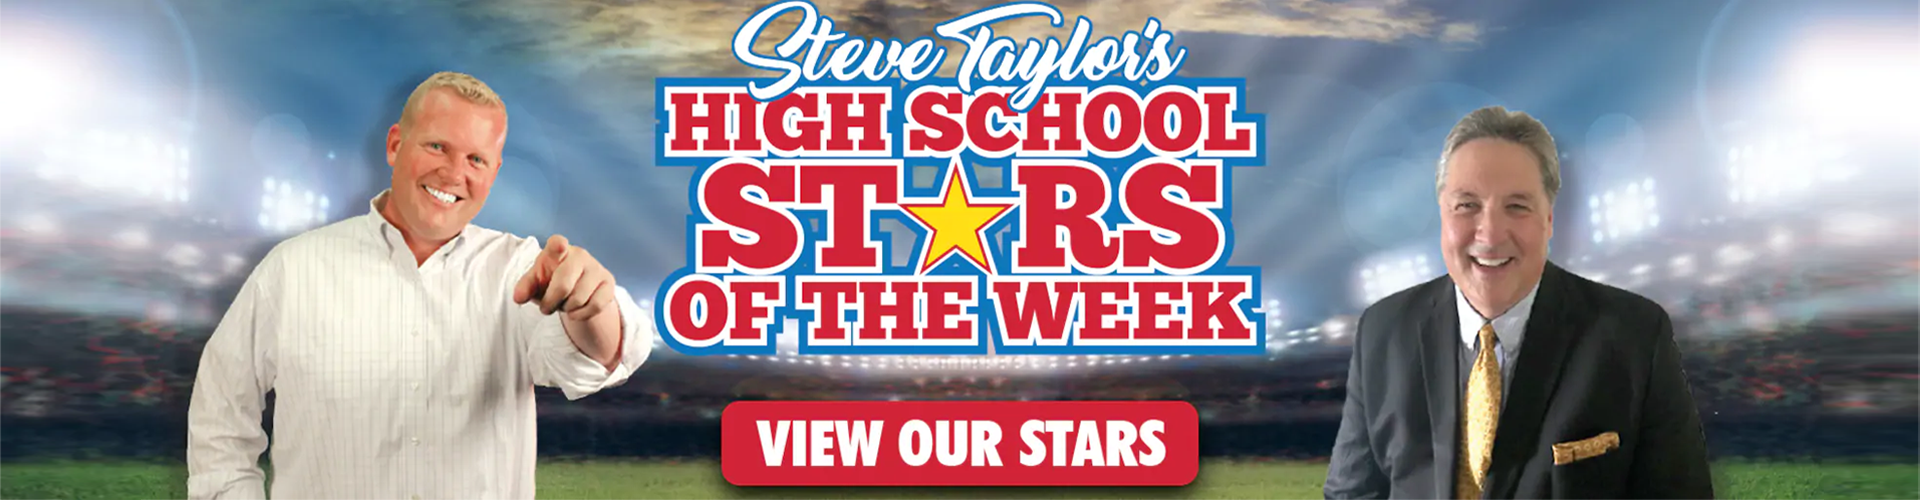 The Taylor Automotive Family Stars Of the Week